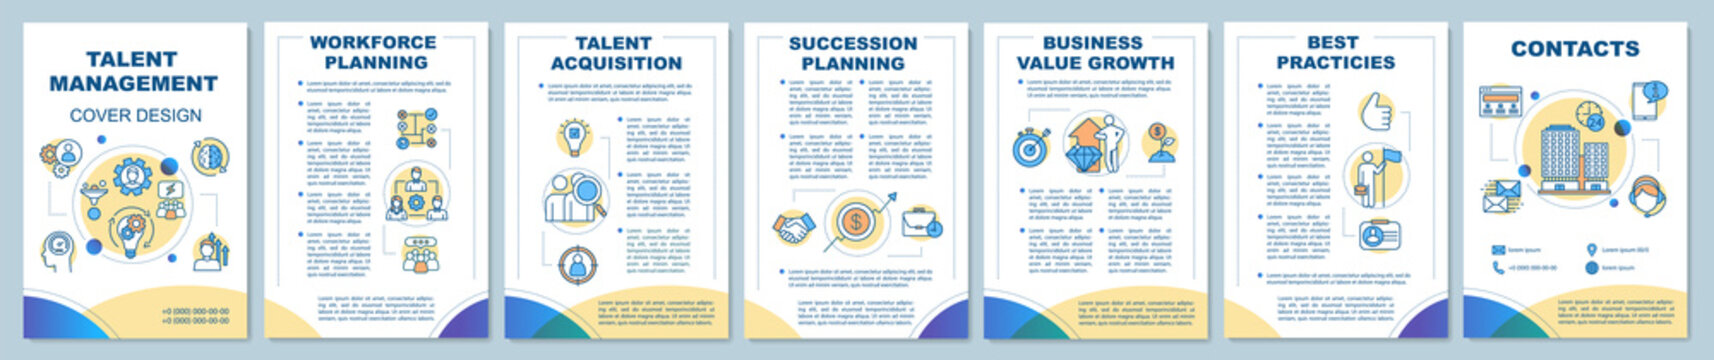 Talent management brochure template layout